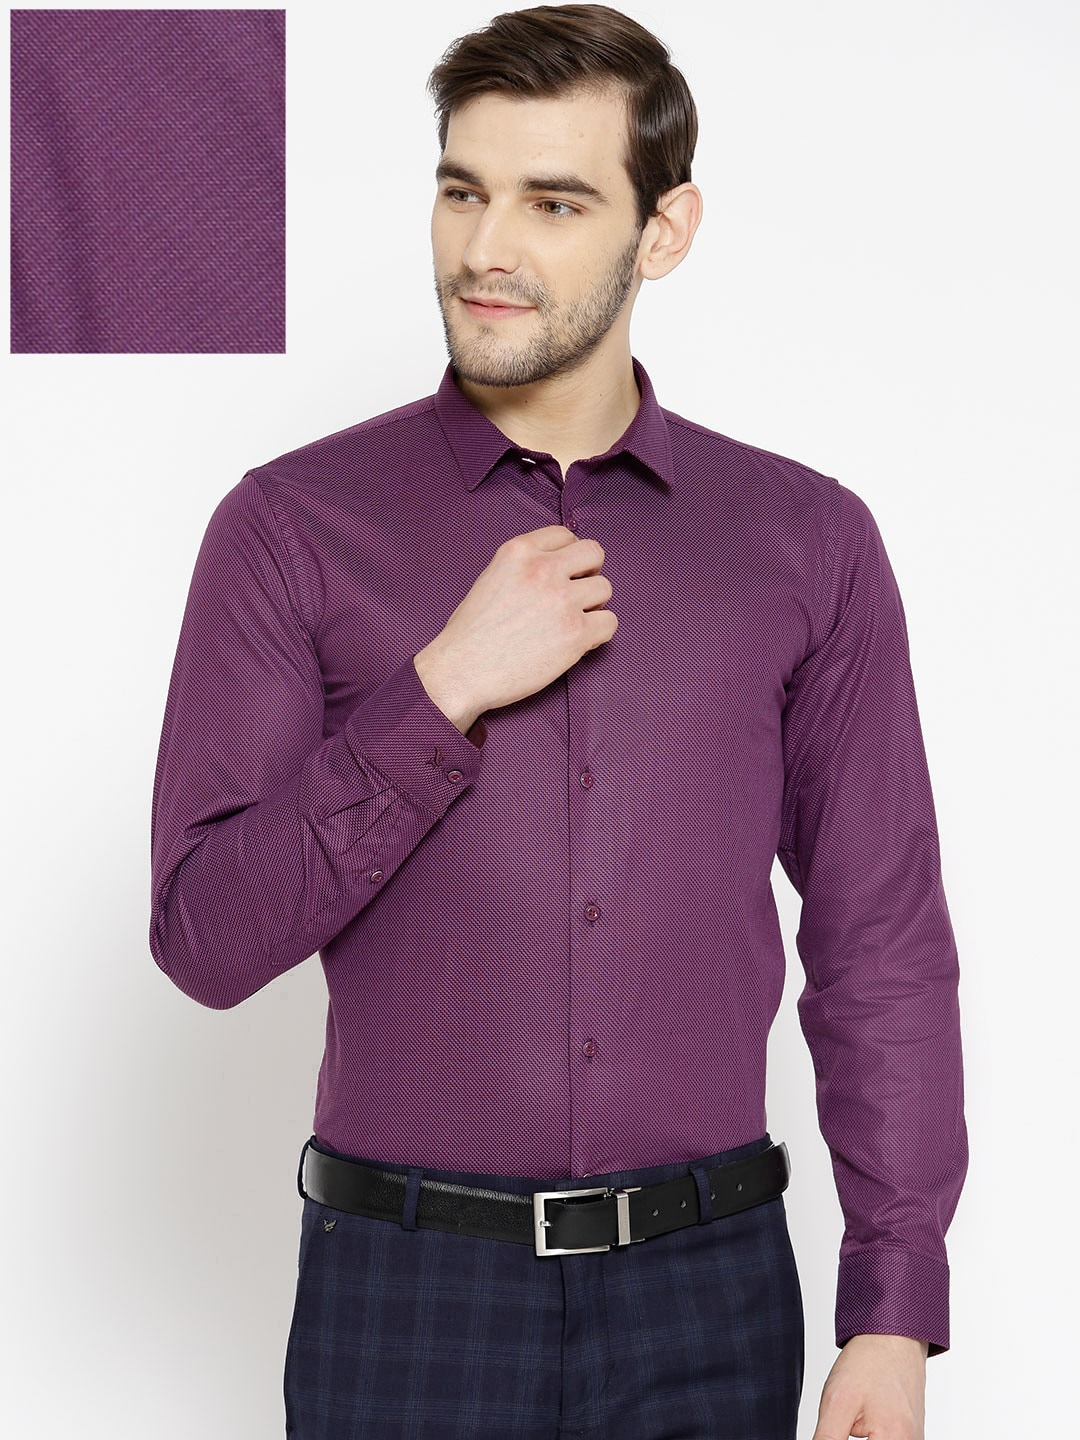 6d9f271c5 Mens Formal Shirts Brands In India - DREAMWORKS